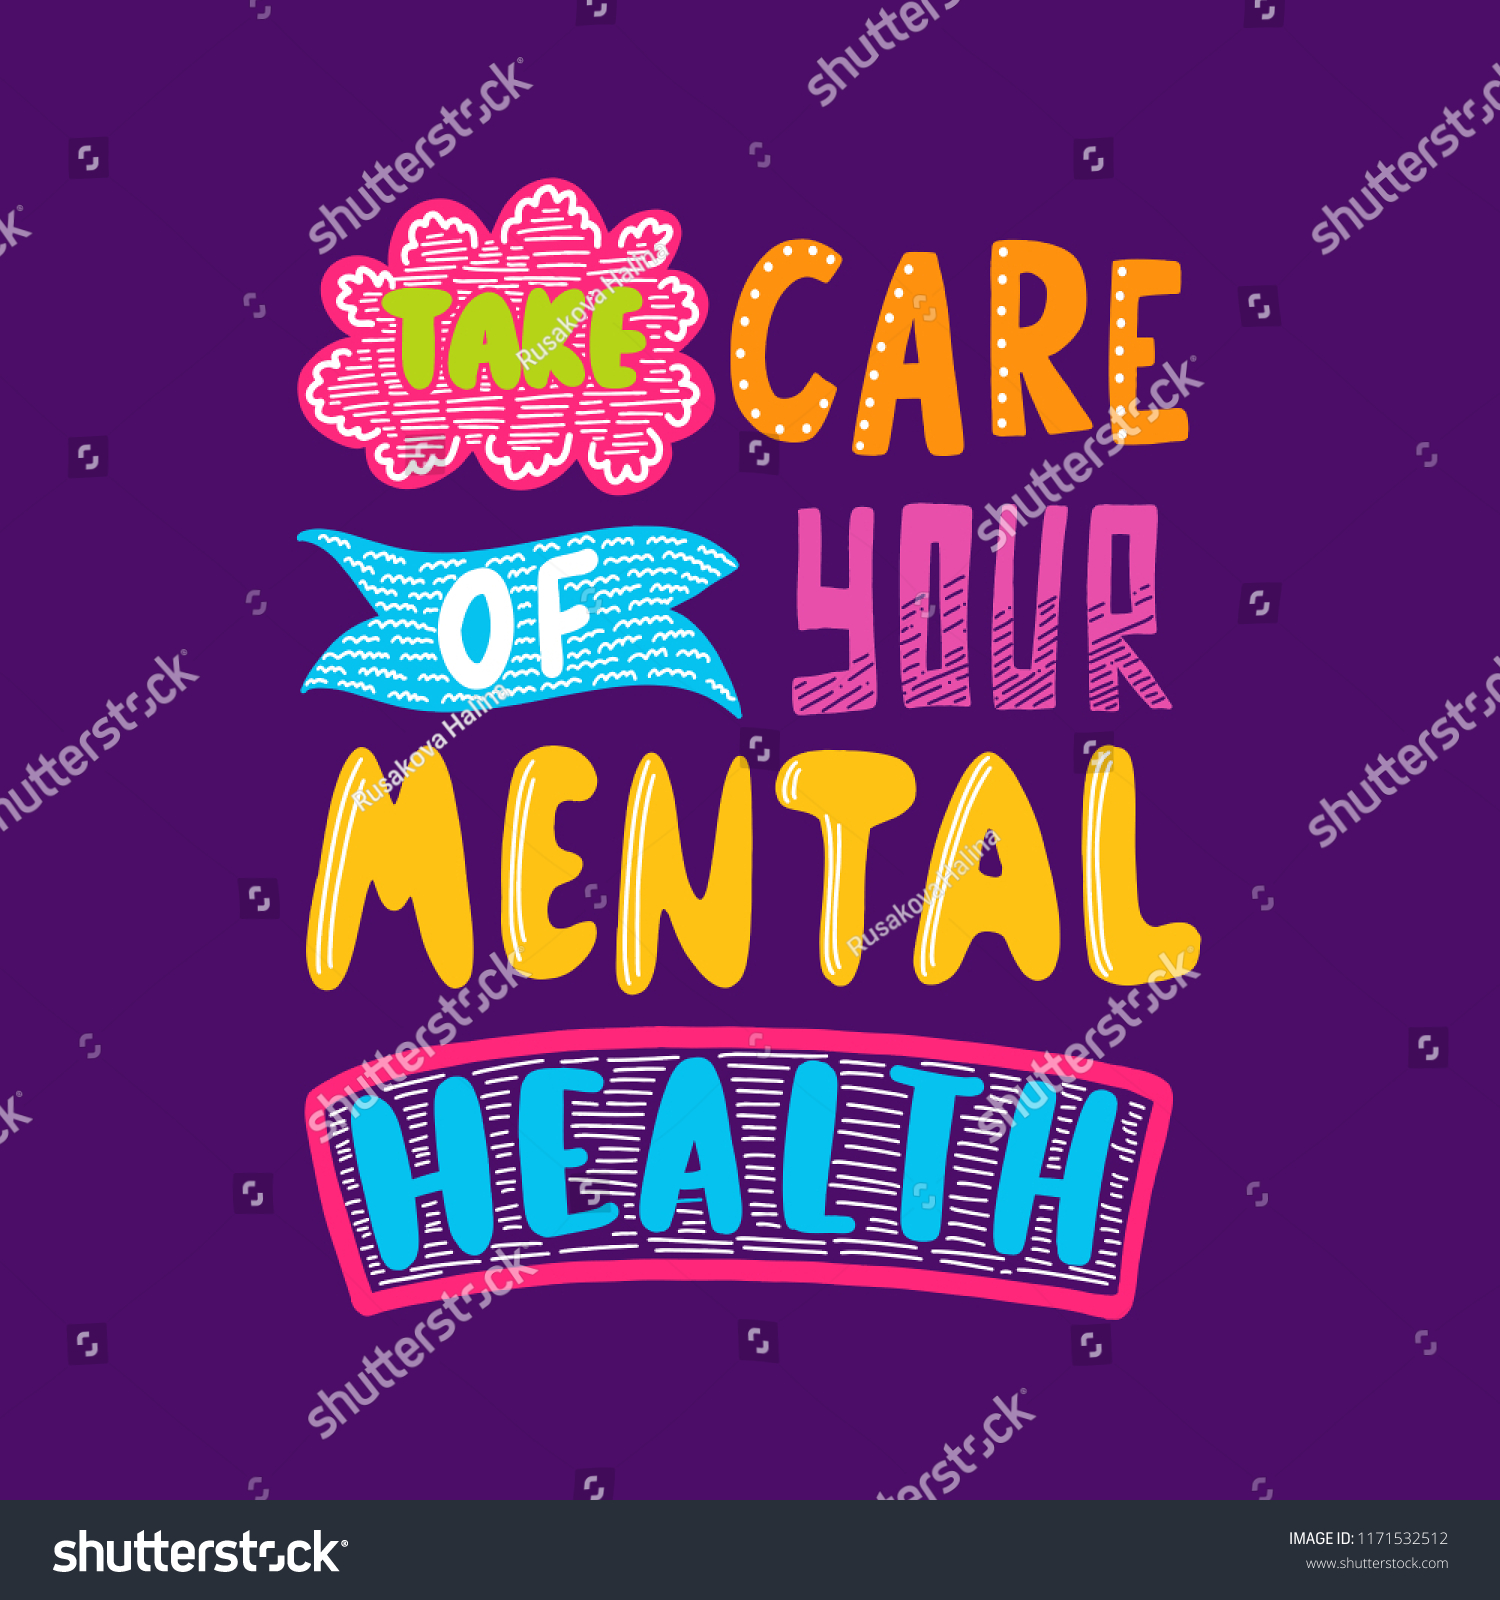 good care of ygood care of your mental healthour mental health